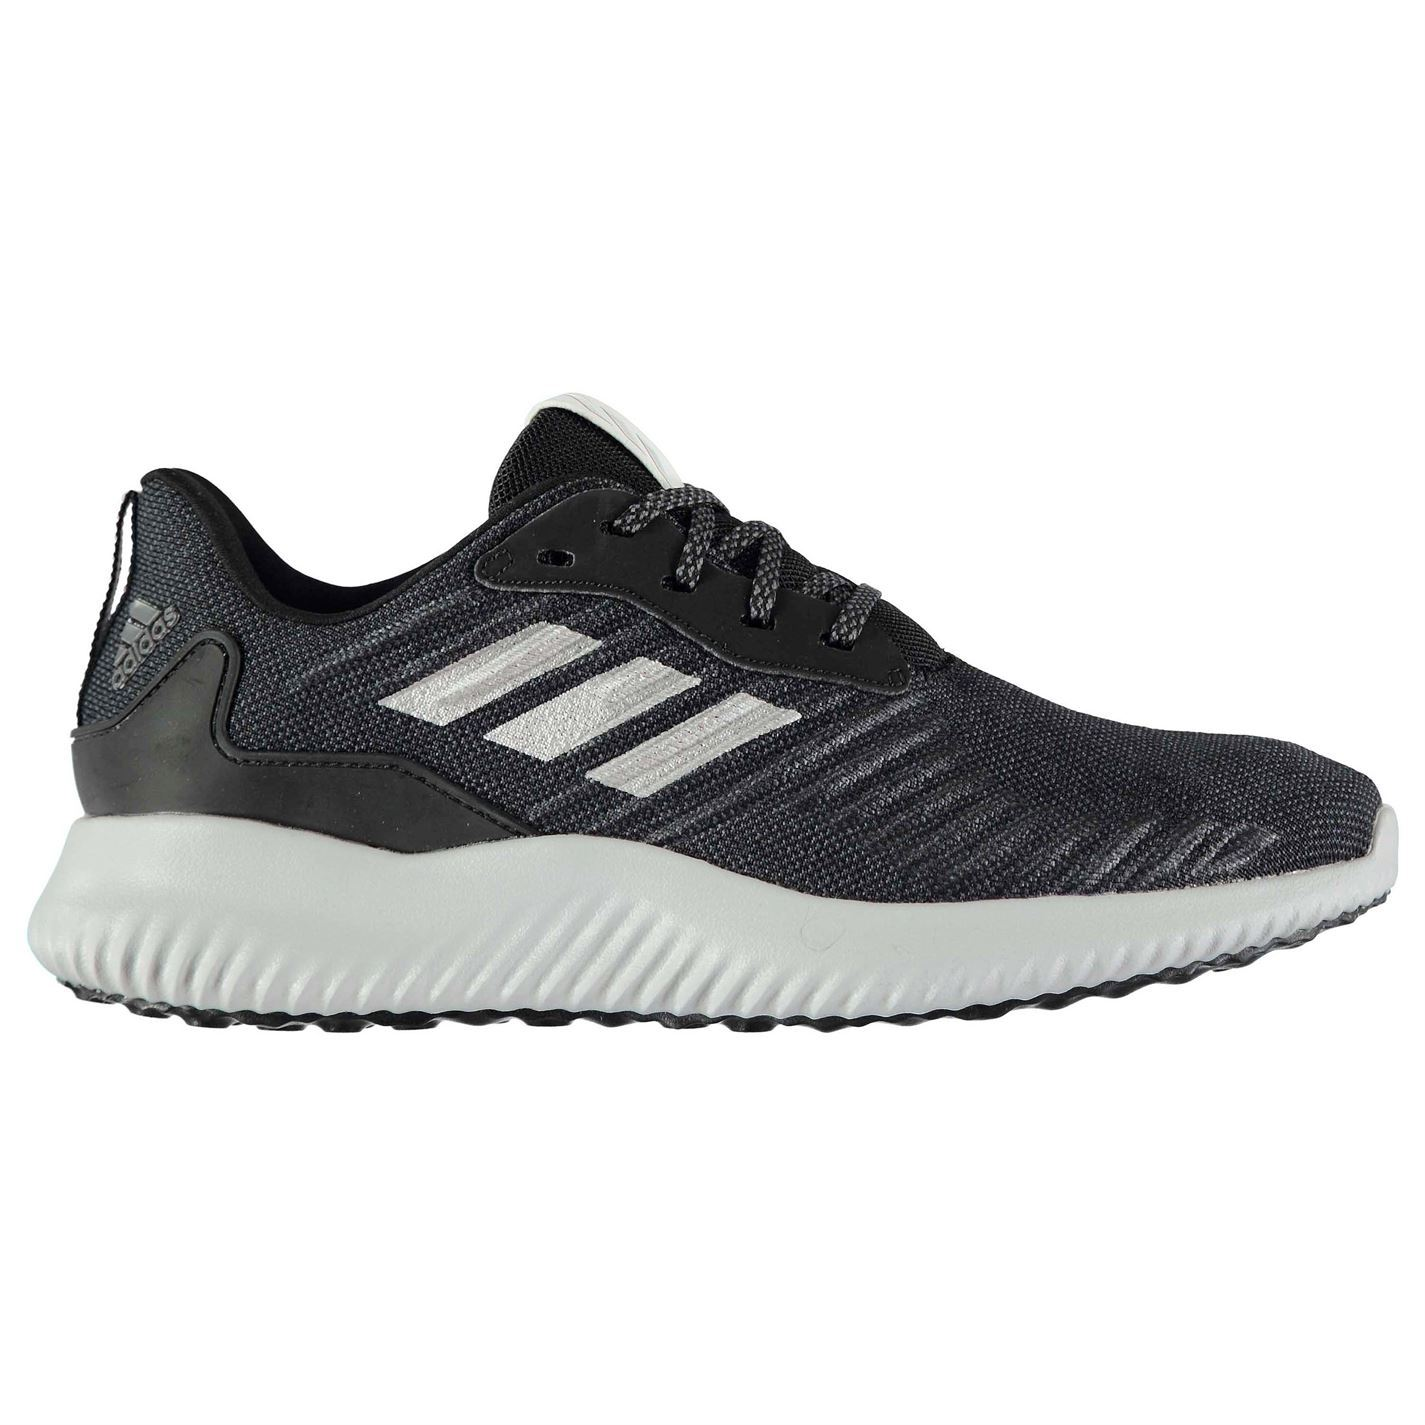 30e36e8fc65b3 ... adidas AlphaBounce Running Shoes Womens Black Silver Jogging Trainers  Sneakers ...